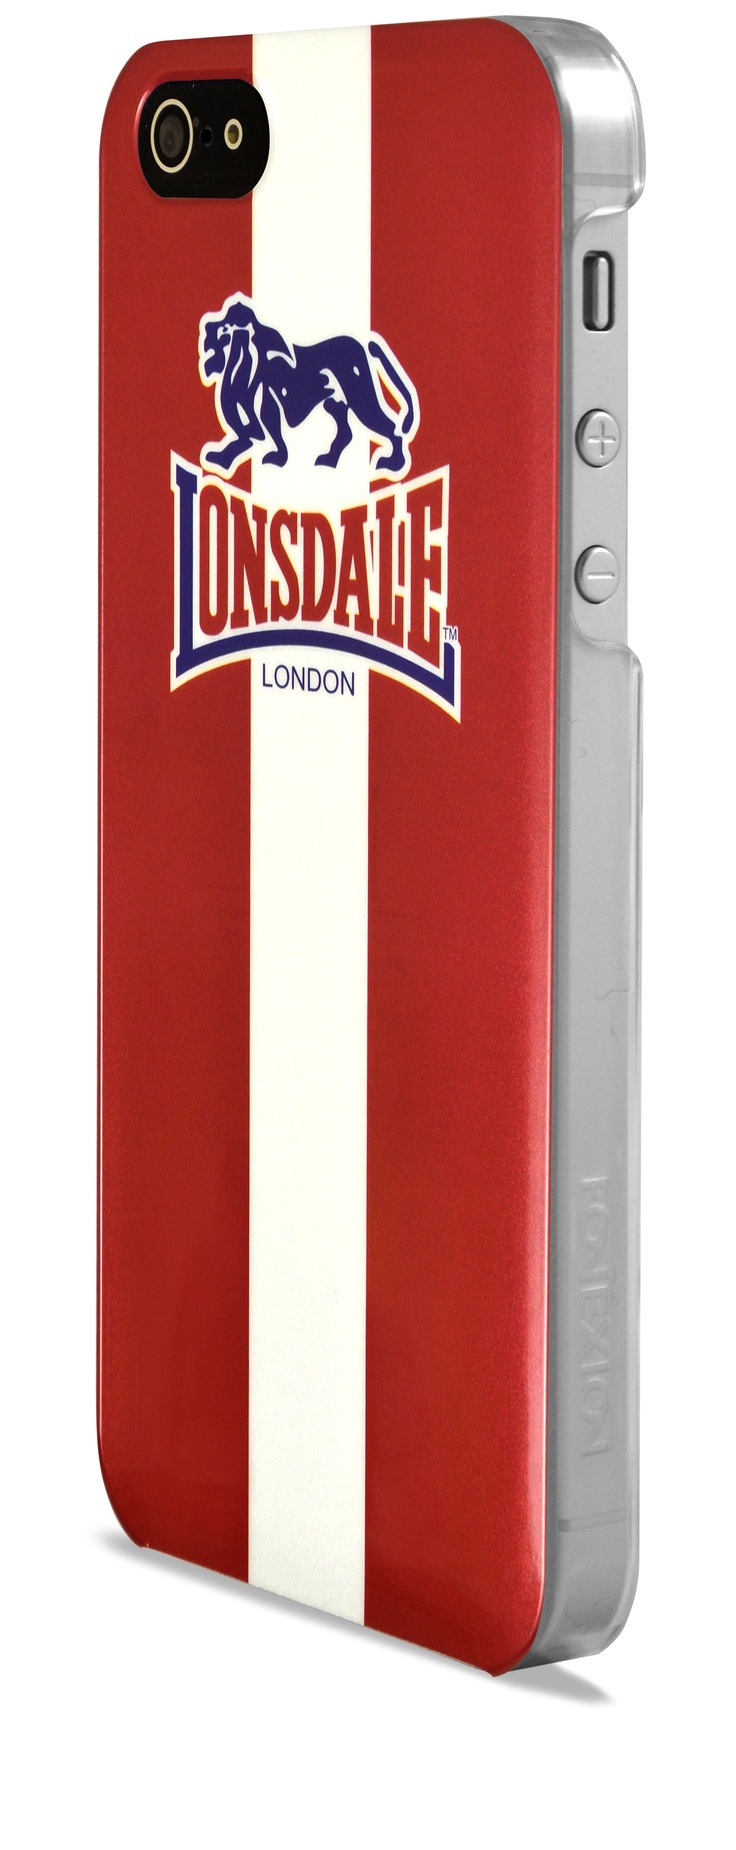 Lonsdale iPhone 5 cover #Fonexion #boxing